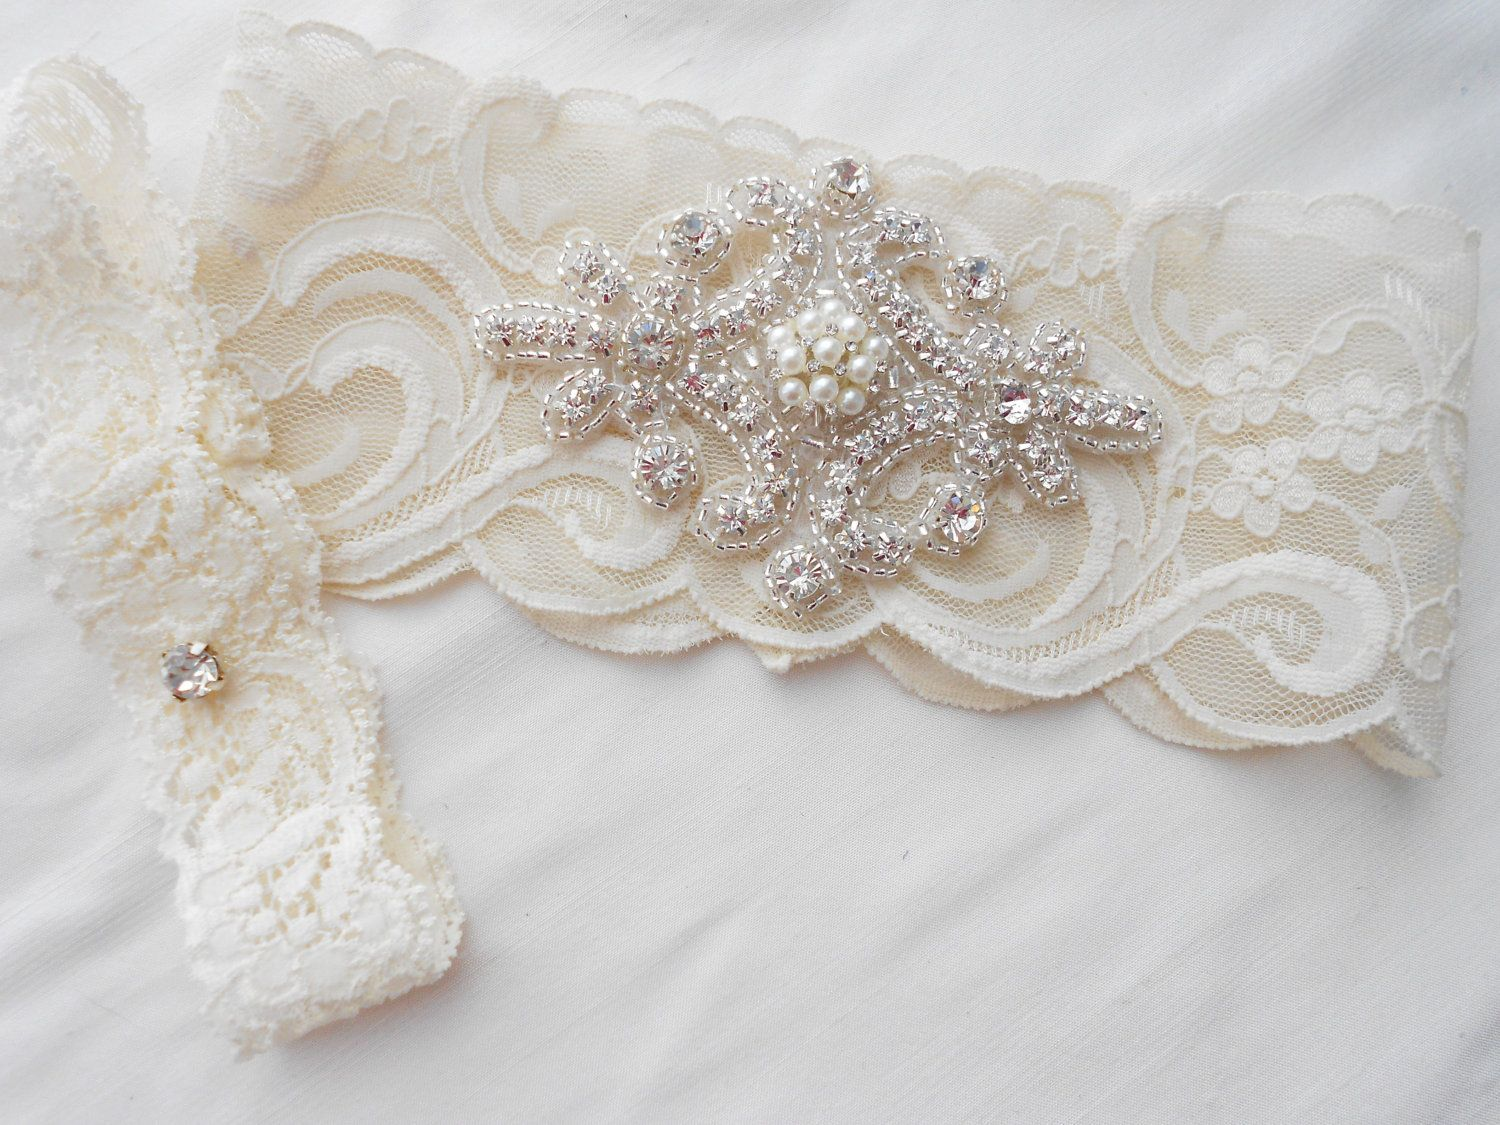 Wedding Garter Set Ivory Stretch Lace Bridal With Classic Pearls And Rhinestones